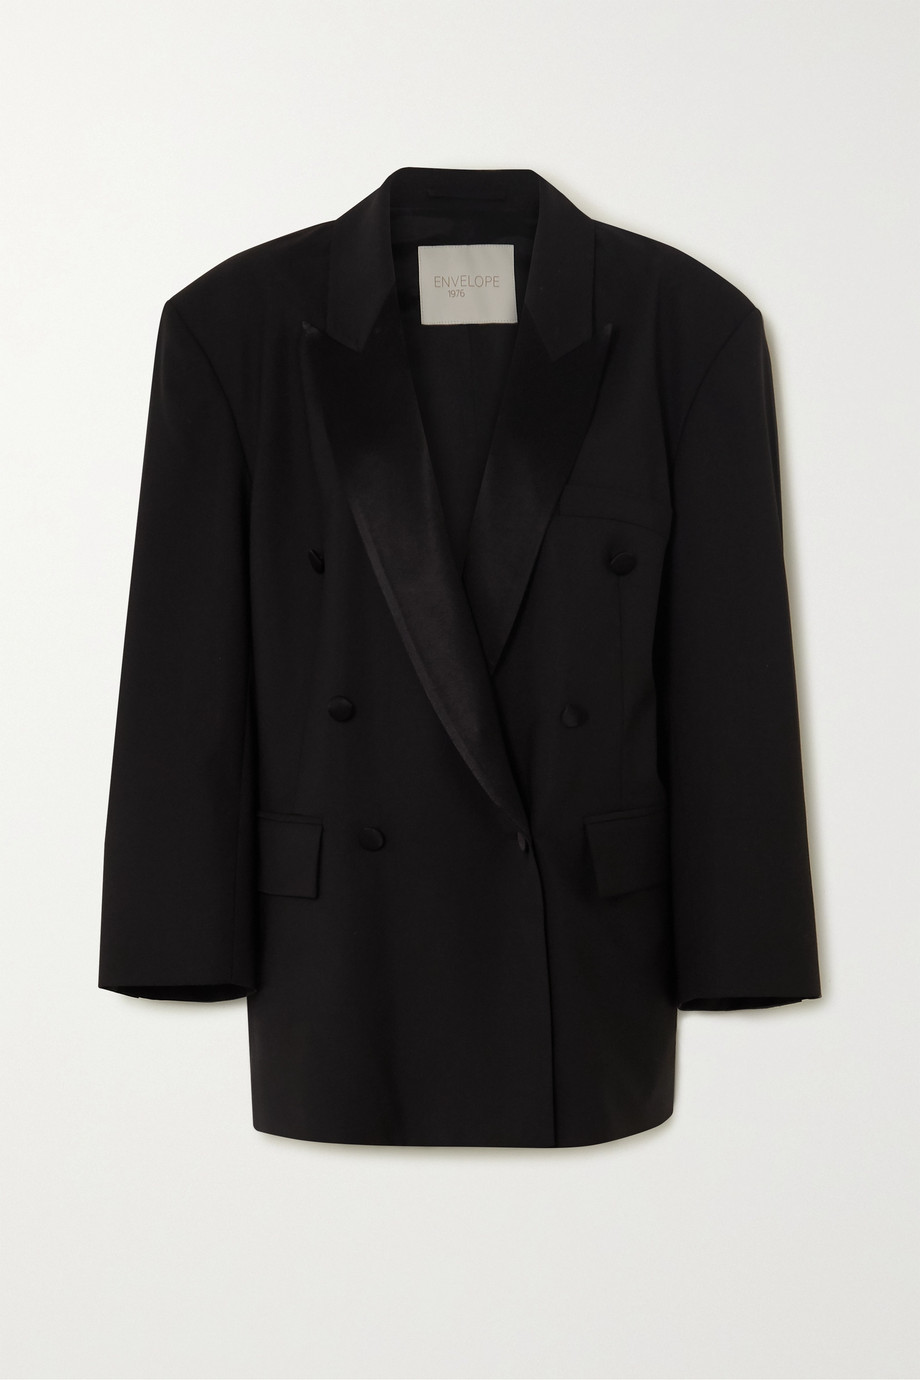 Envelope1976 Lyon oversized double-breasted satin-trimmed wool blazer